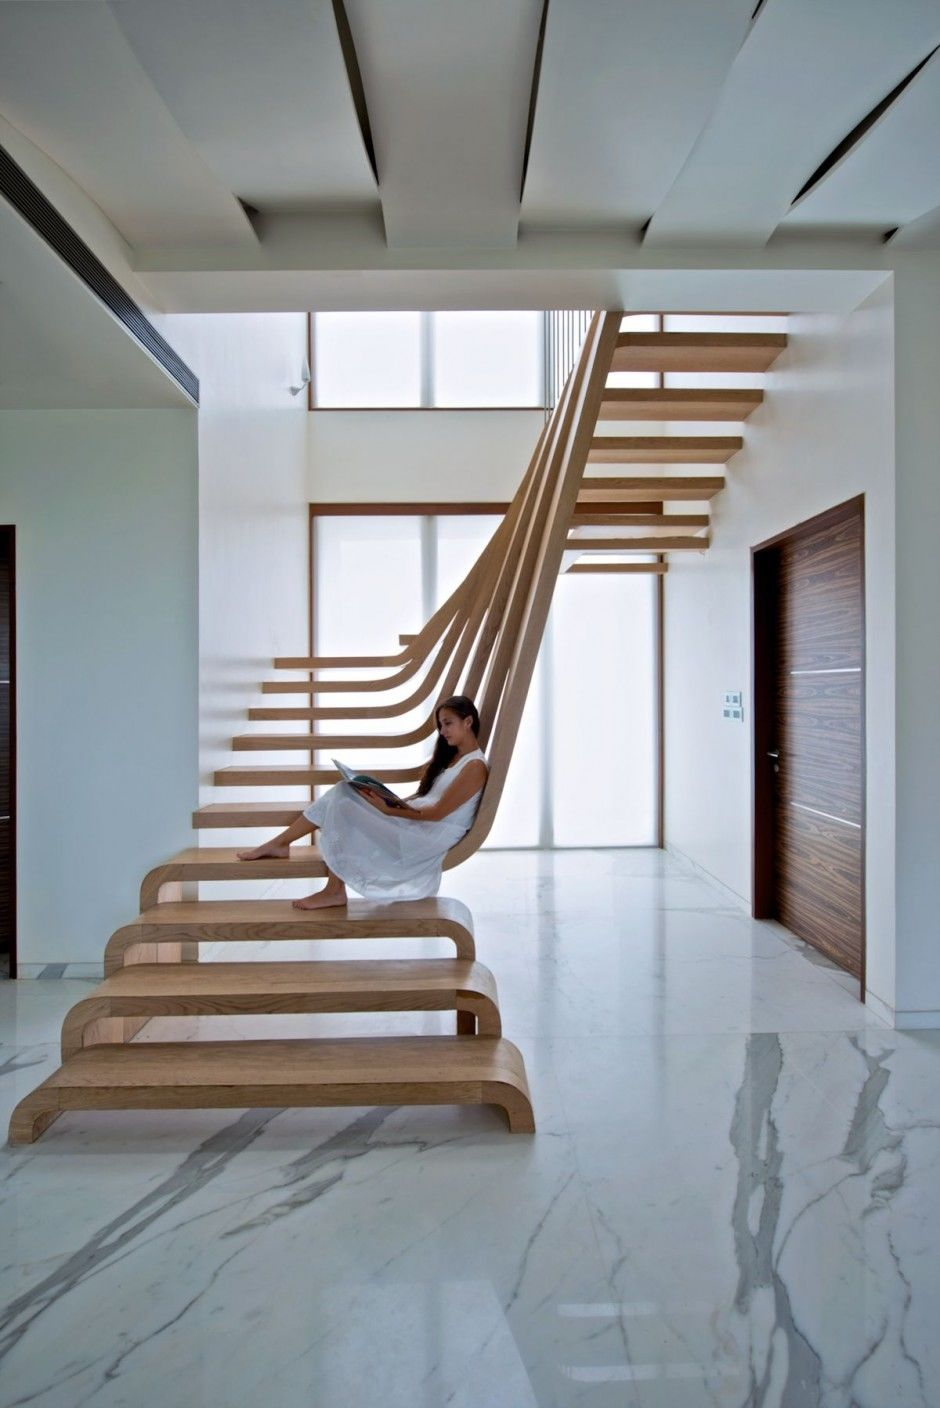 Best 25 Modern Staircase Ideas On Pinterest: Modern Staircase Pictures, Photos, And Images For Facebook